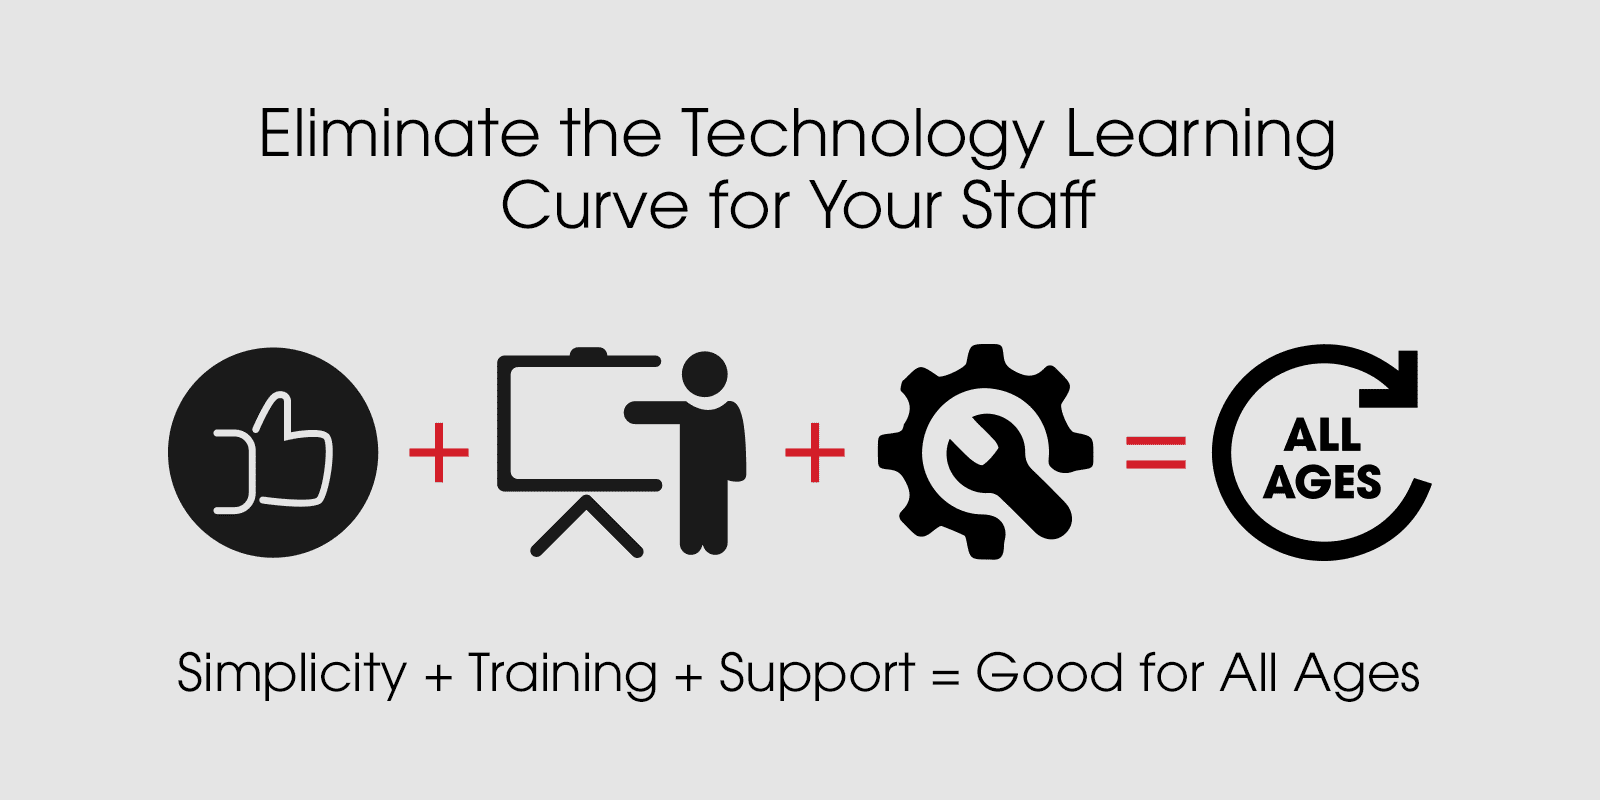 Eliminate the Technology Learning Curve for Your Staff